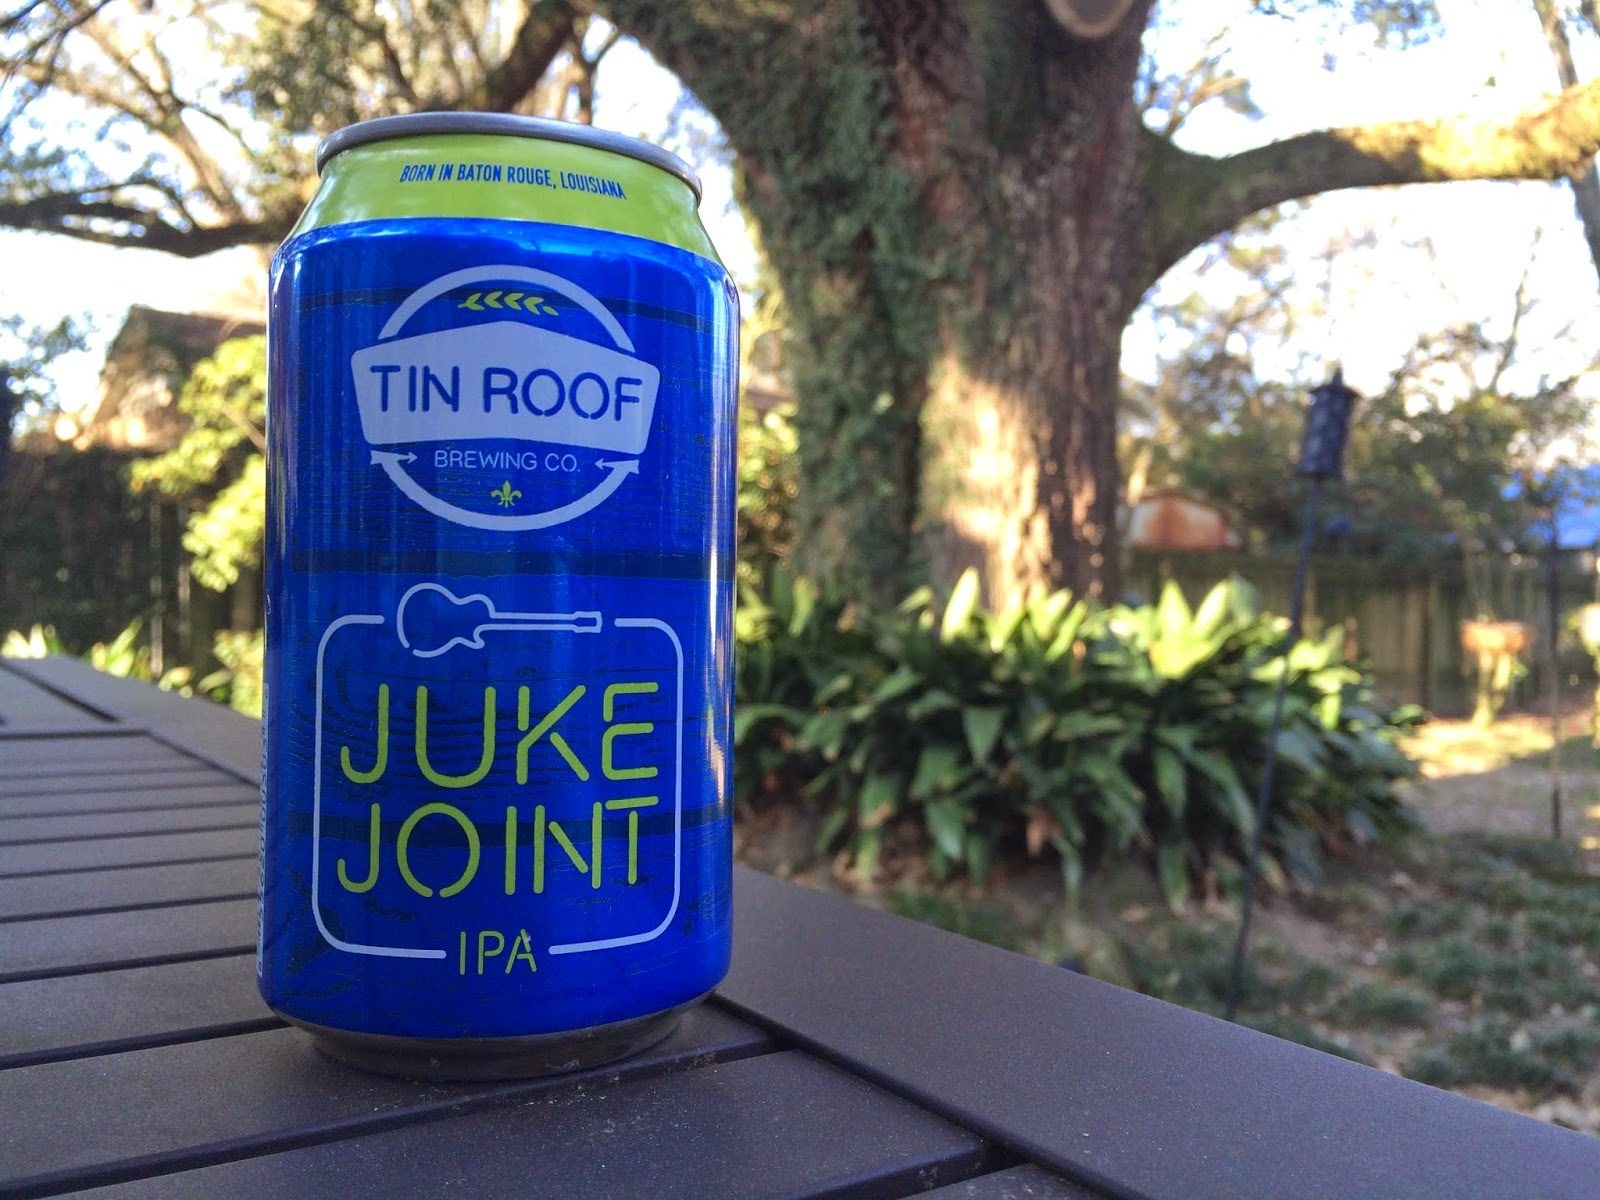 Tin Roof's Juke Joint IPA